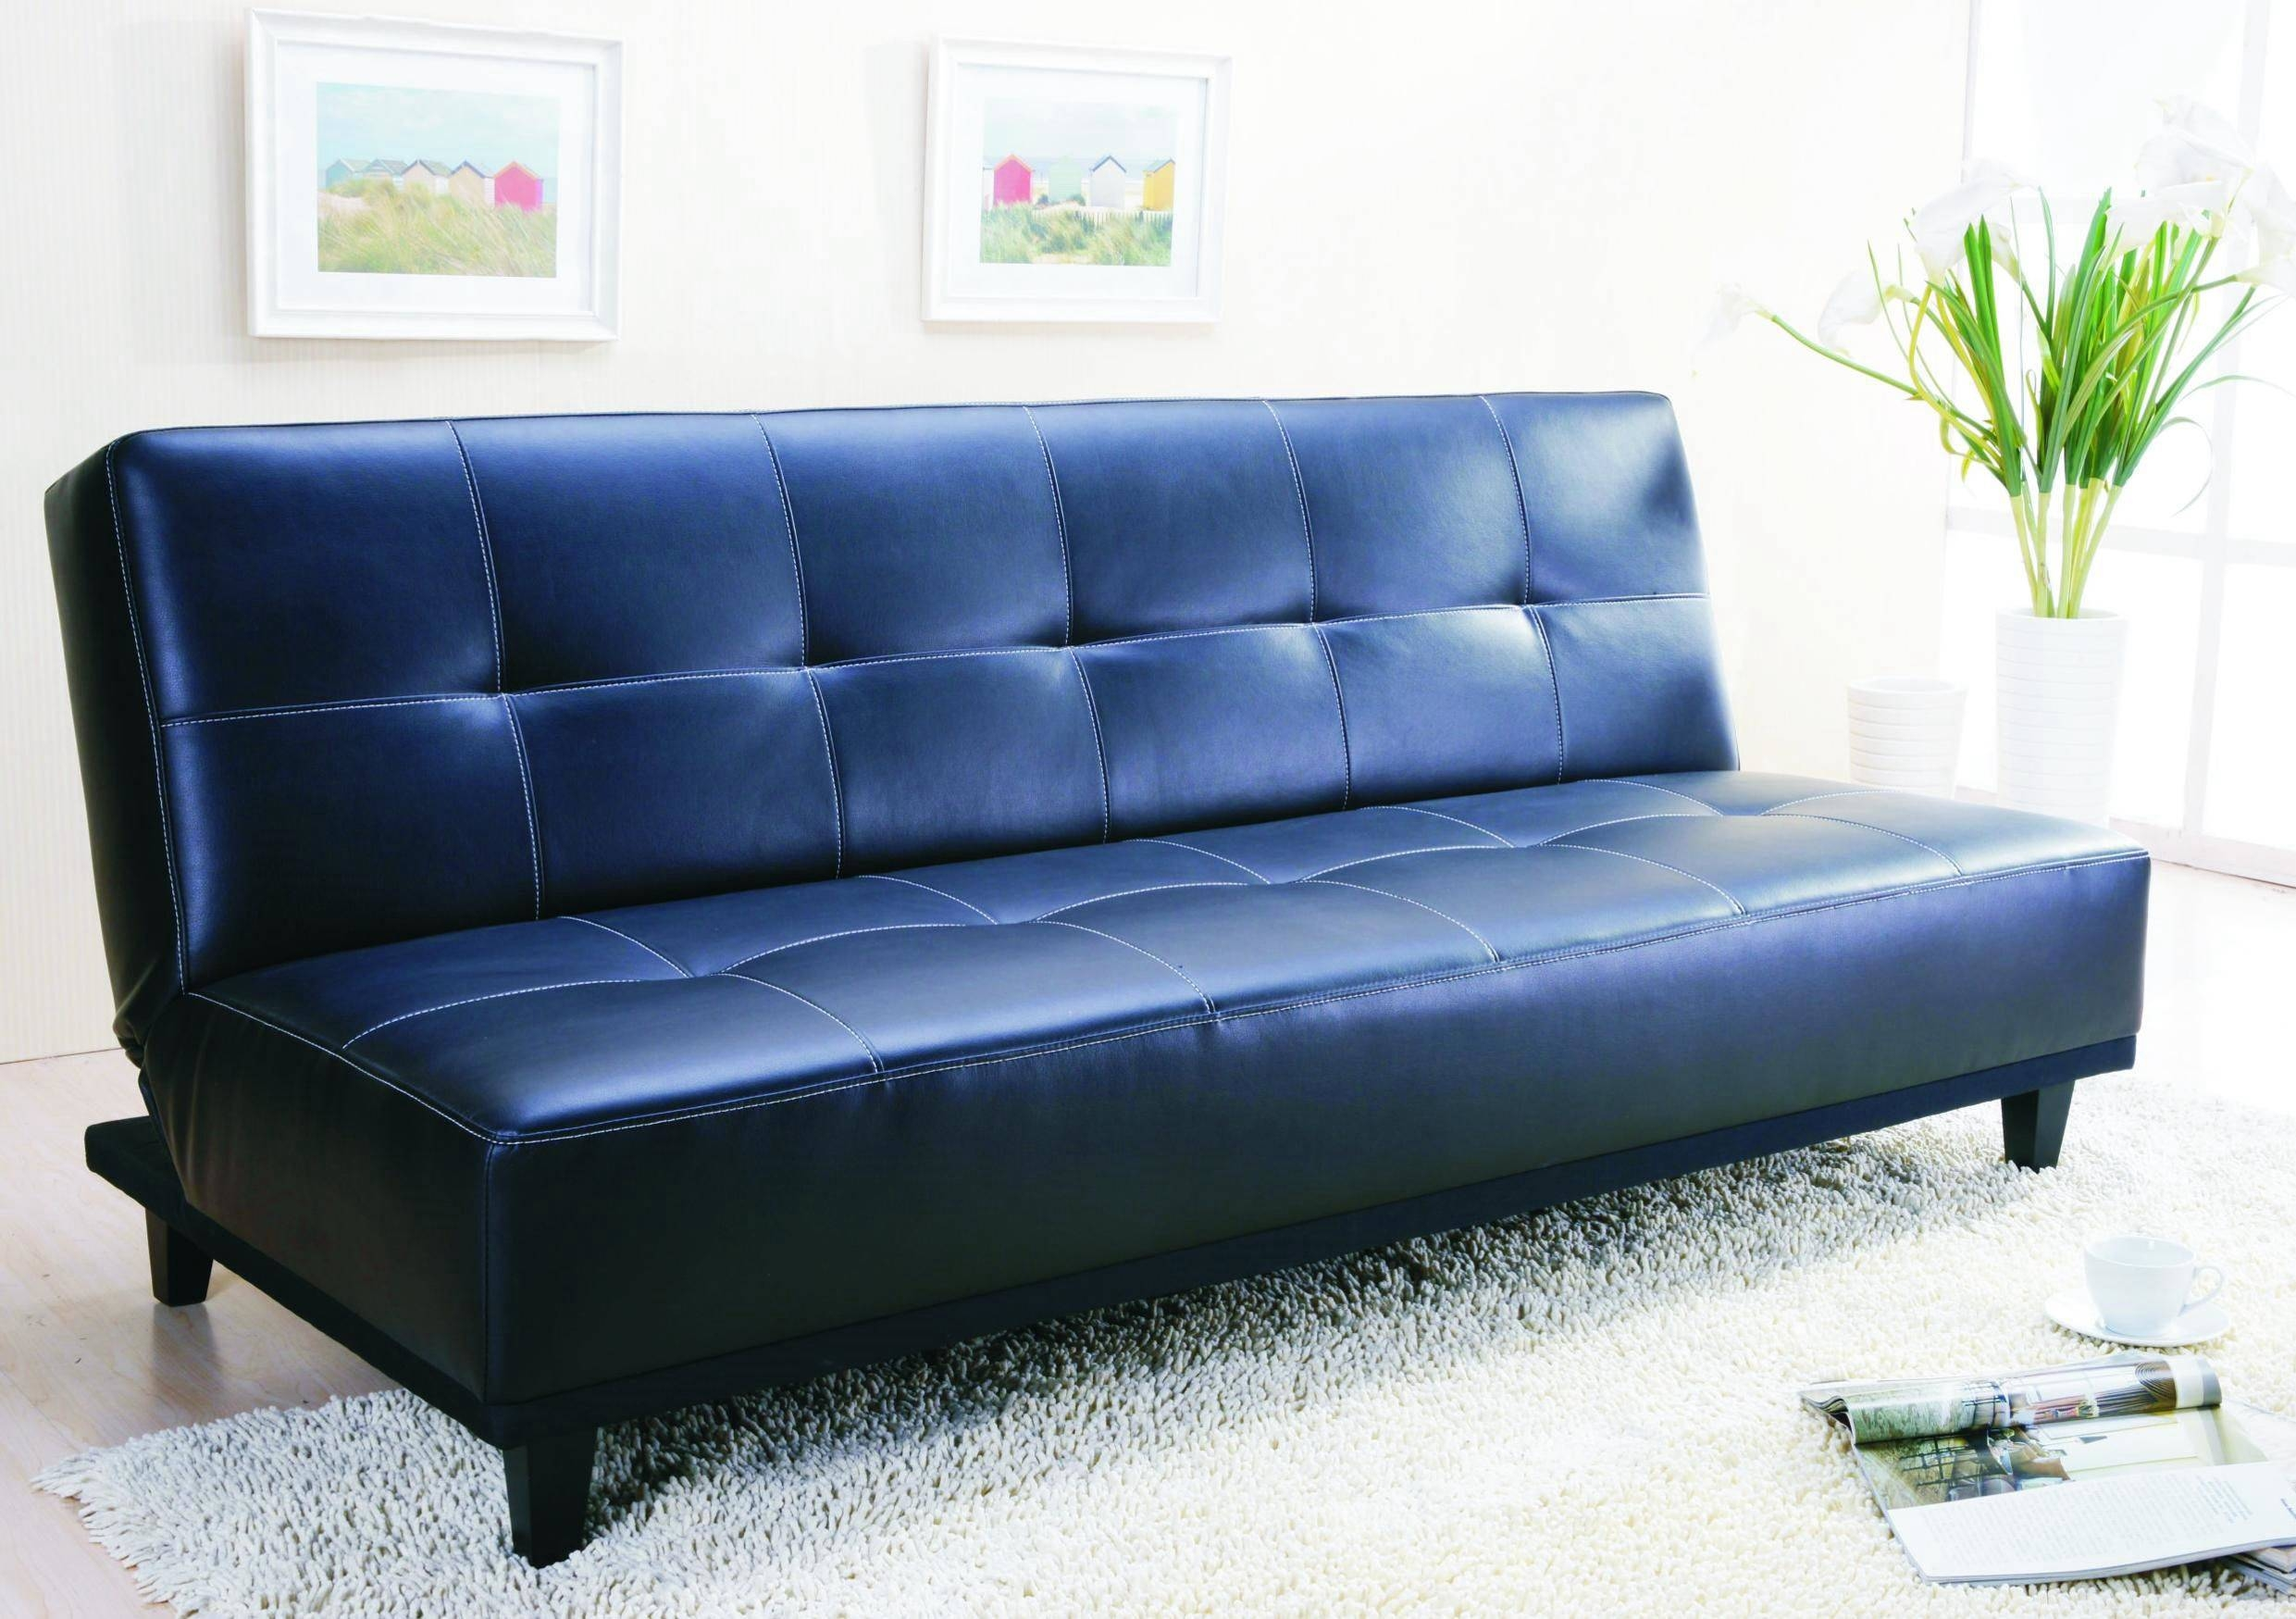 Decorating A Room With Blue Leather Sofa - Traba Homes throughout Blue Sofa Chairs (Image 16 of 30)